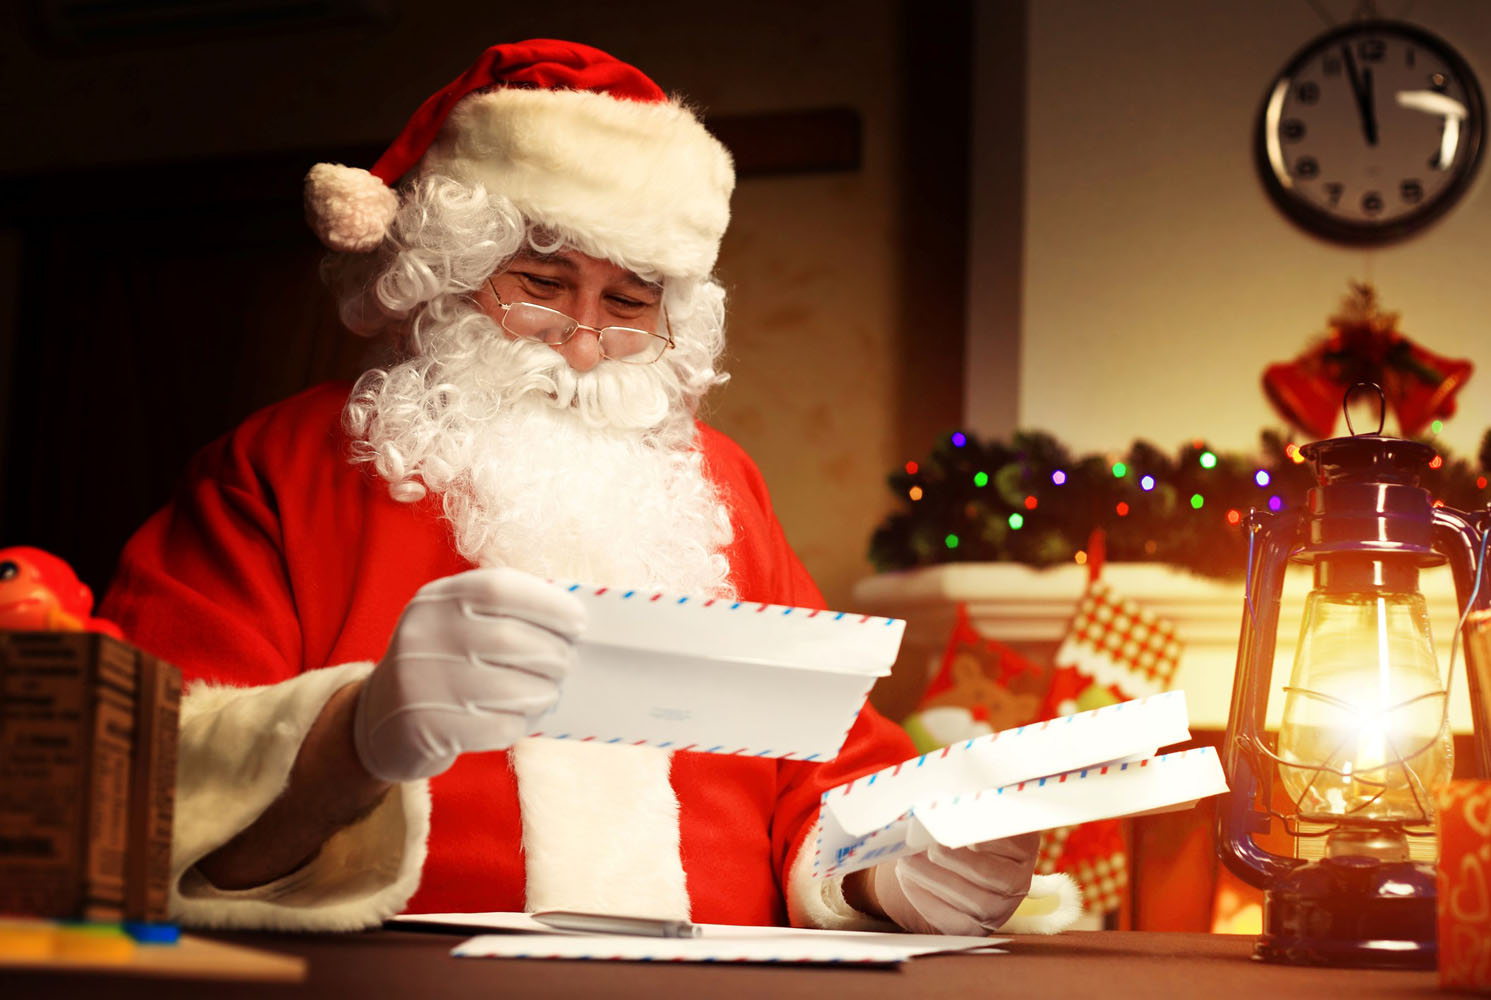 Father Christmas studies air mail letters next to a lantern.